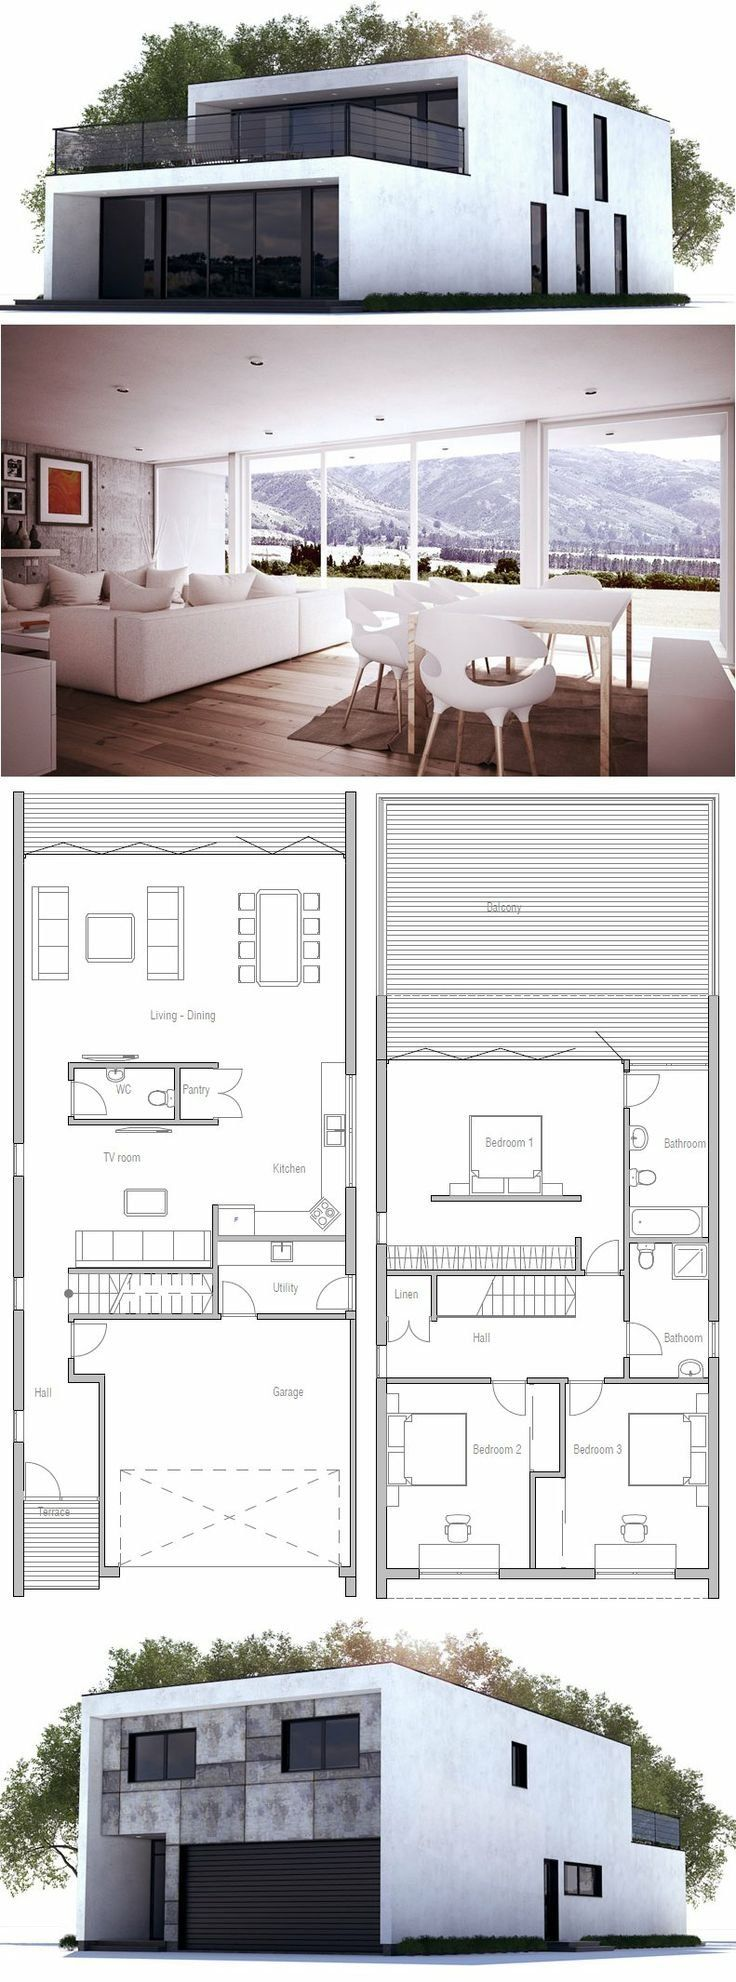 Best Images About SmallNarrow Plot House Plans On Pinterest - Home design and plans